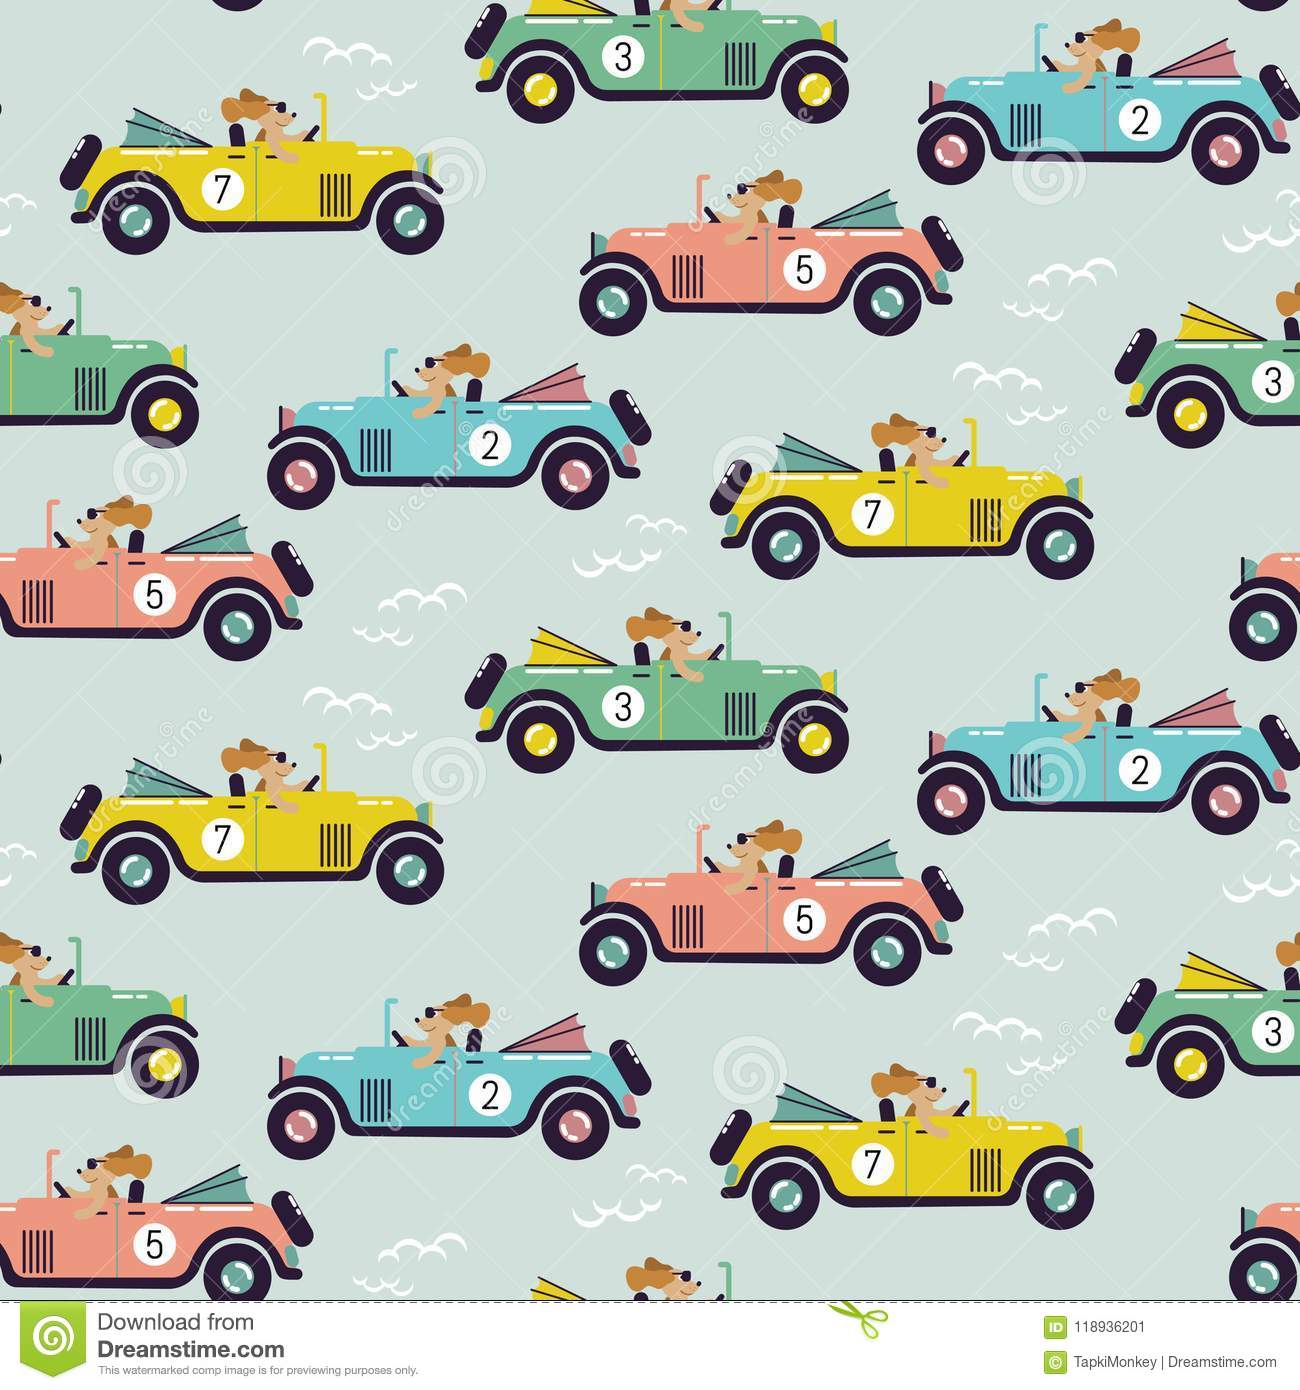 1300x1390 - Wallpaper Cars Cartoon 27